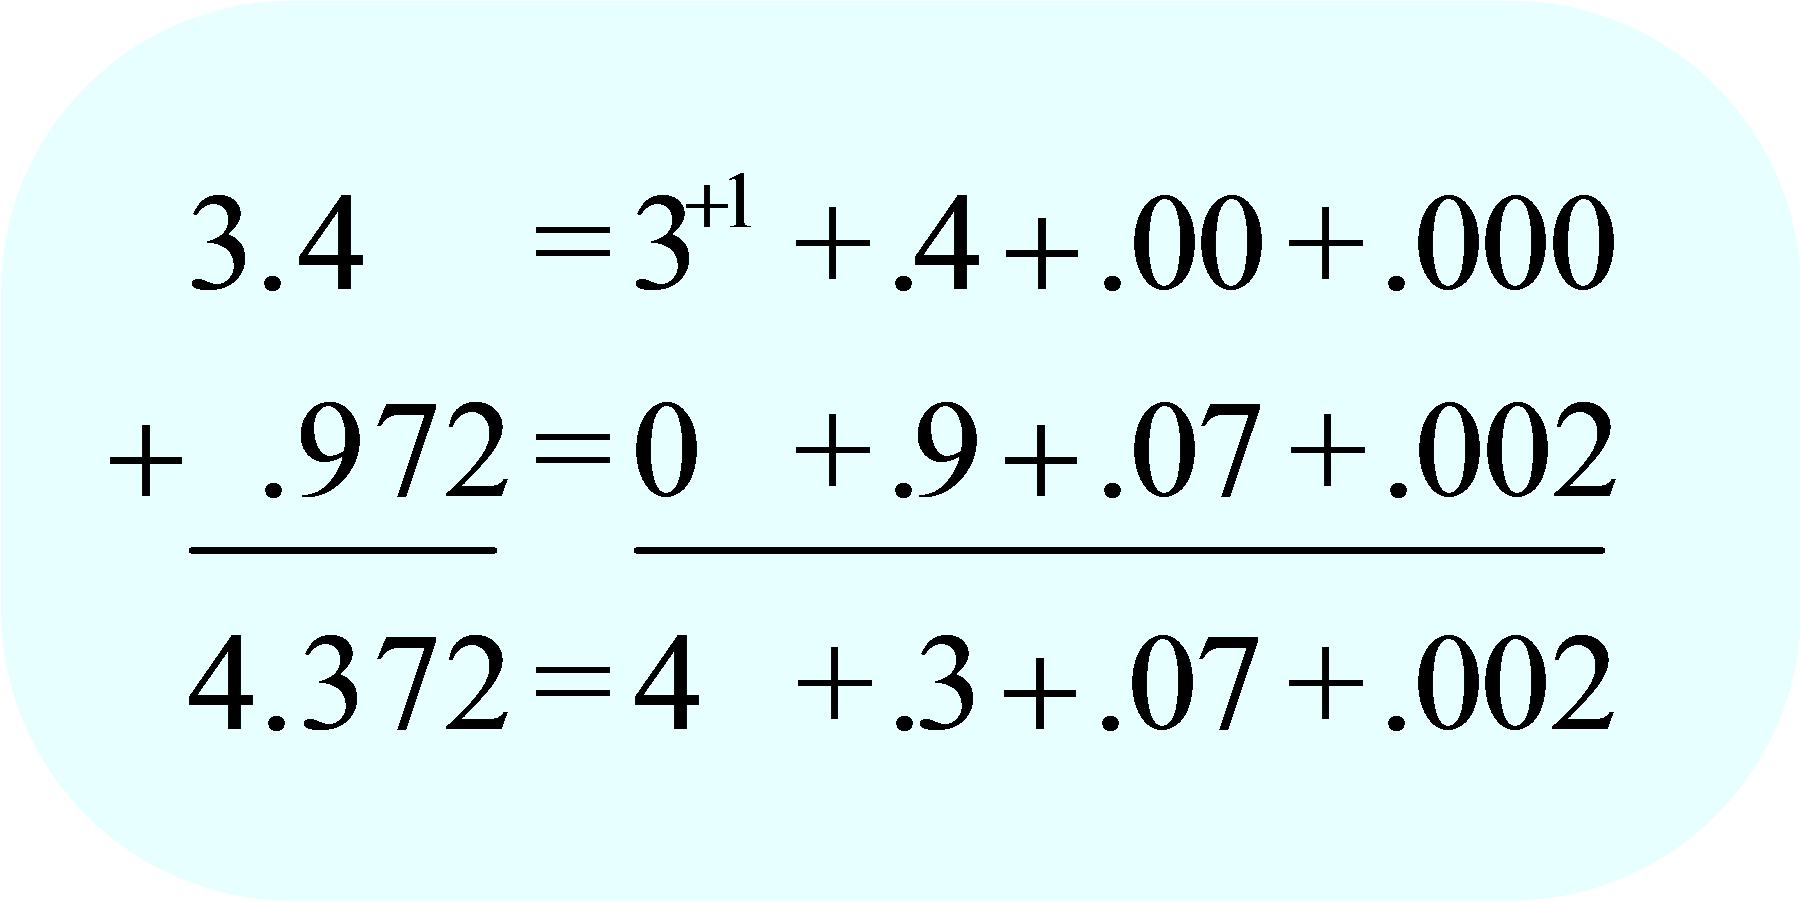 Add Decimals in Expanded Form